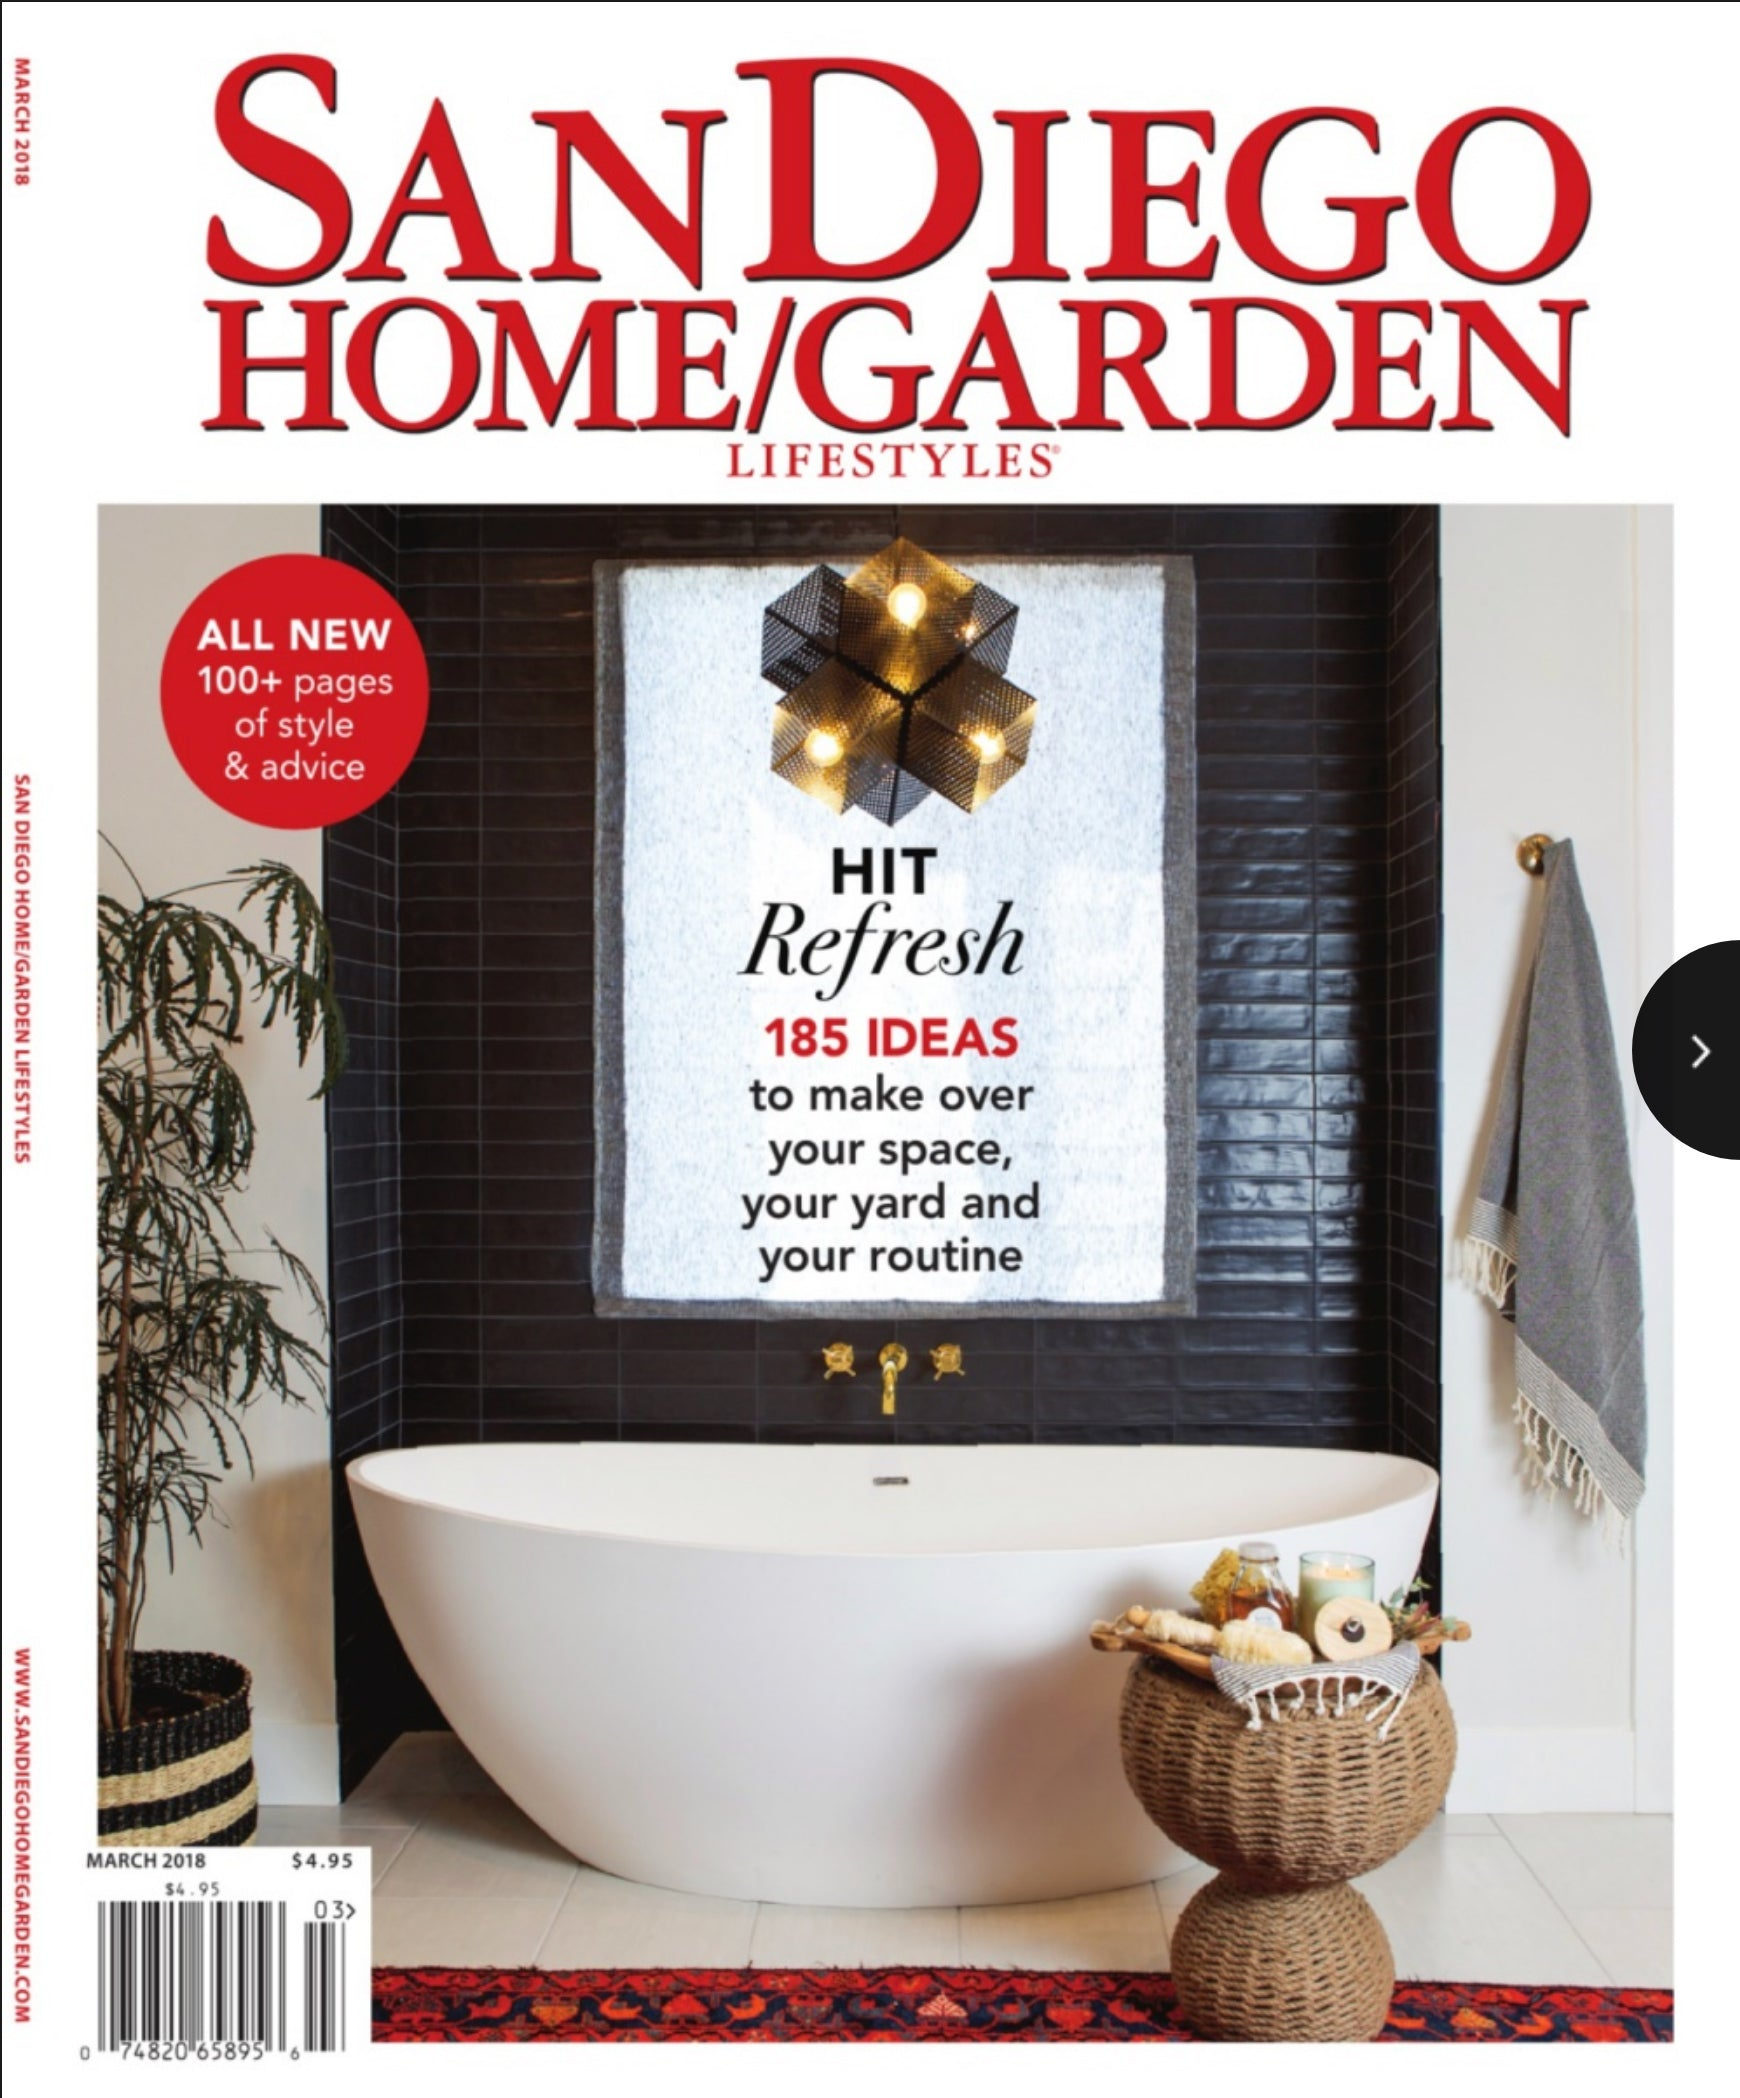 san diego home garden lifestyles magazine cover for march 2018